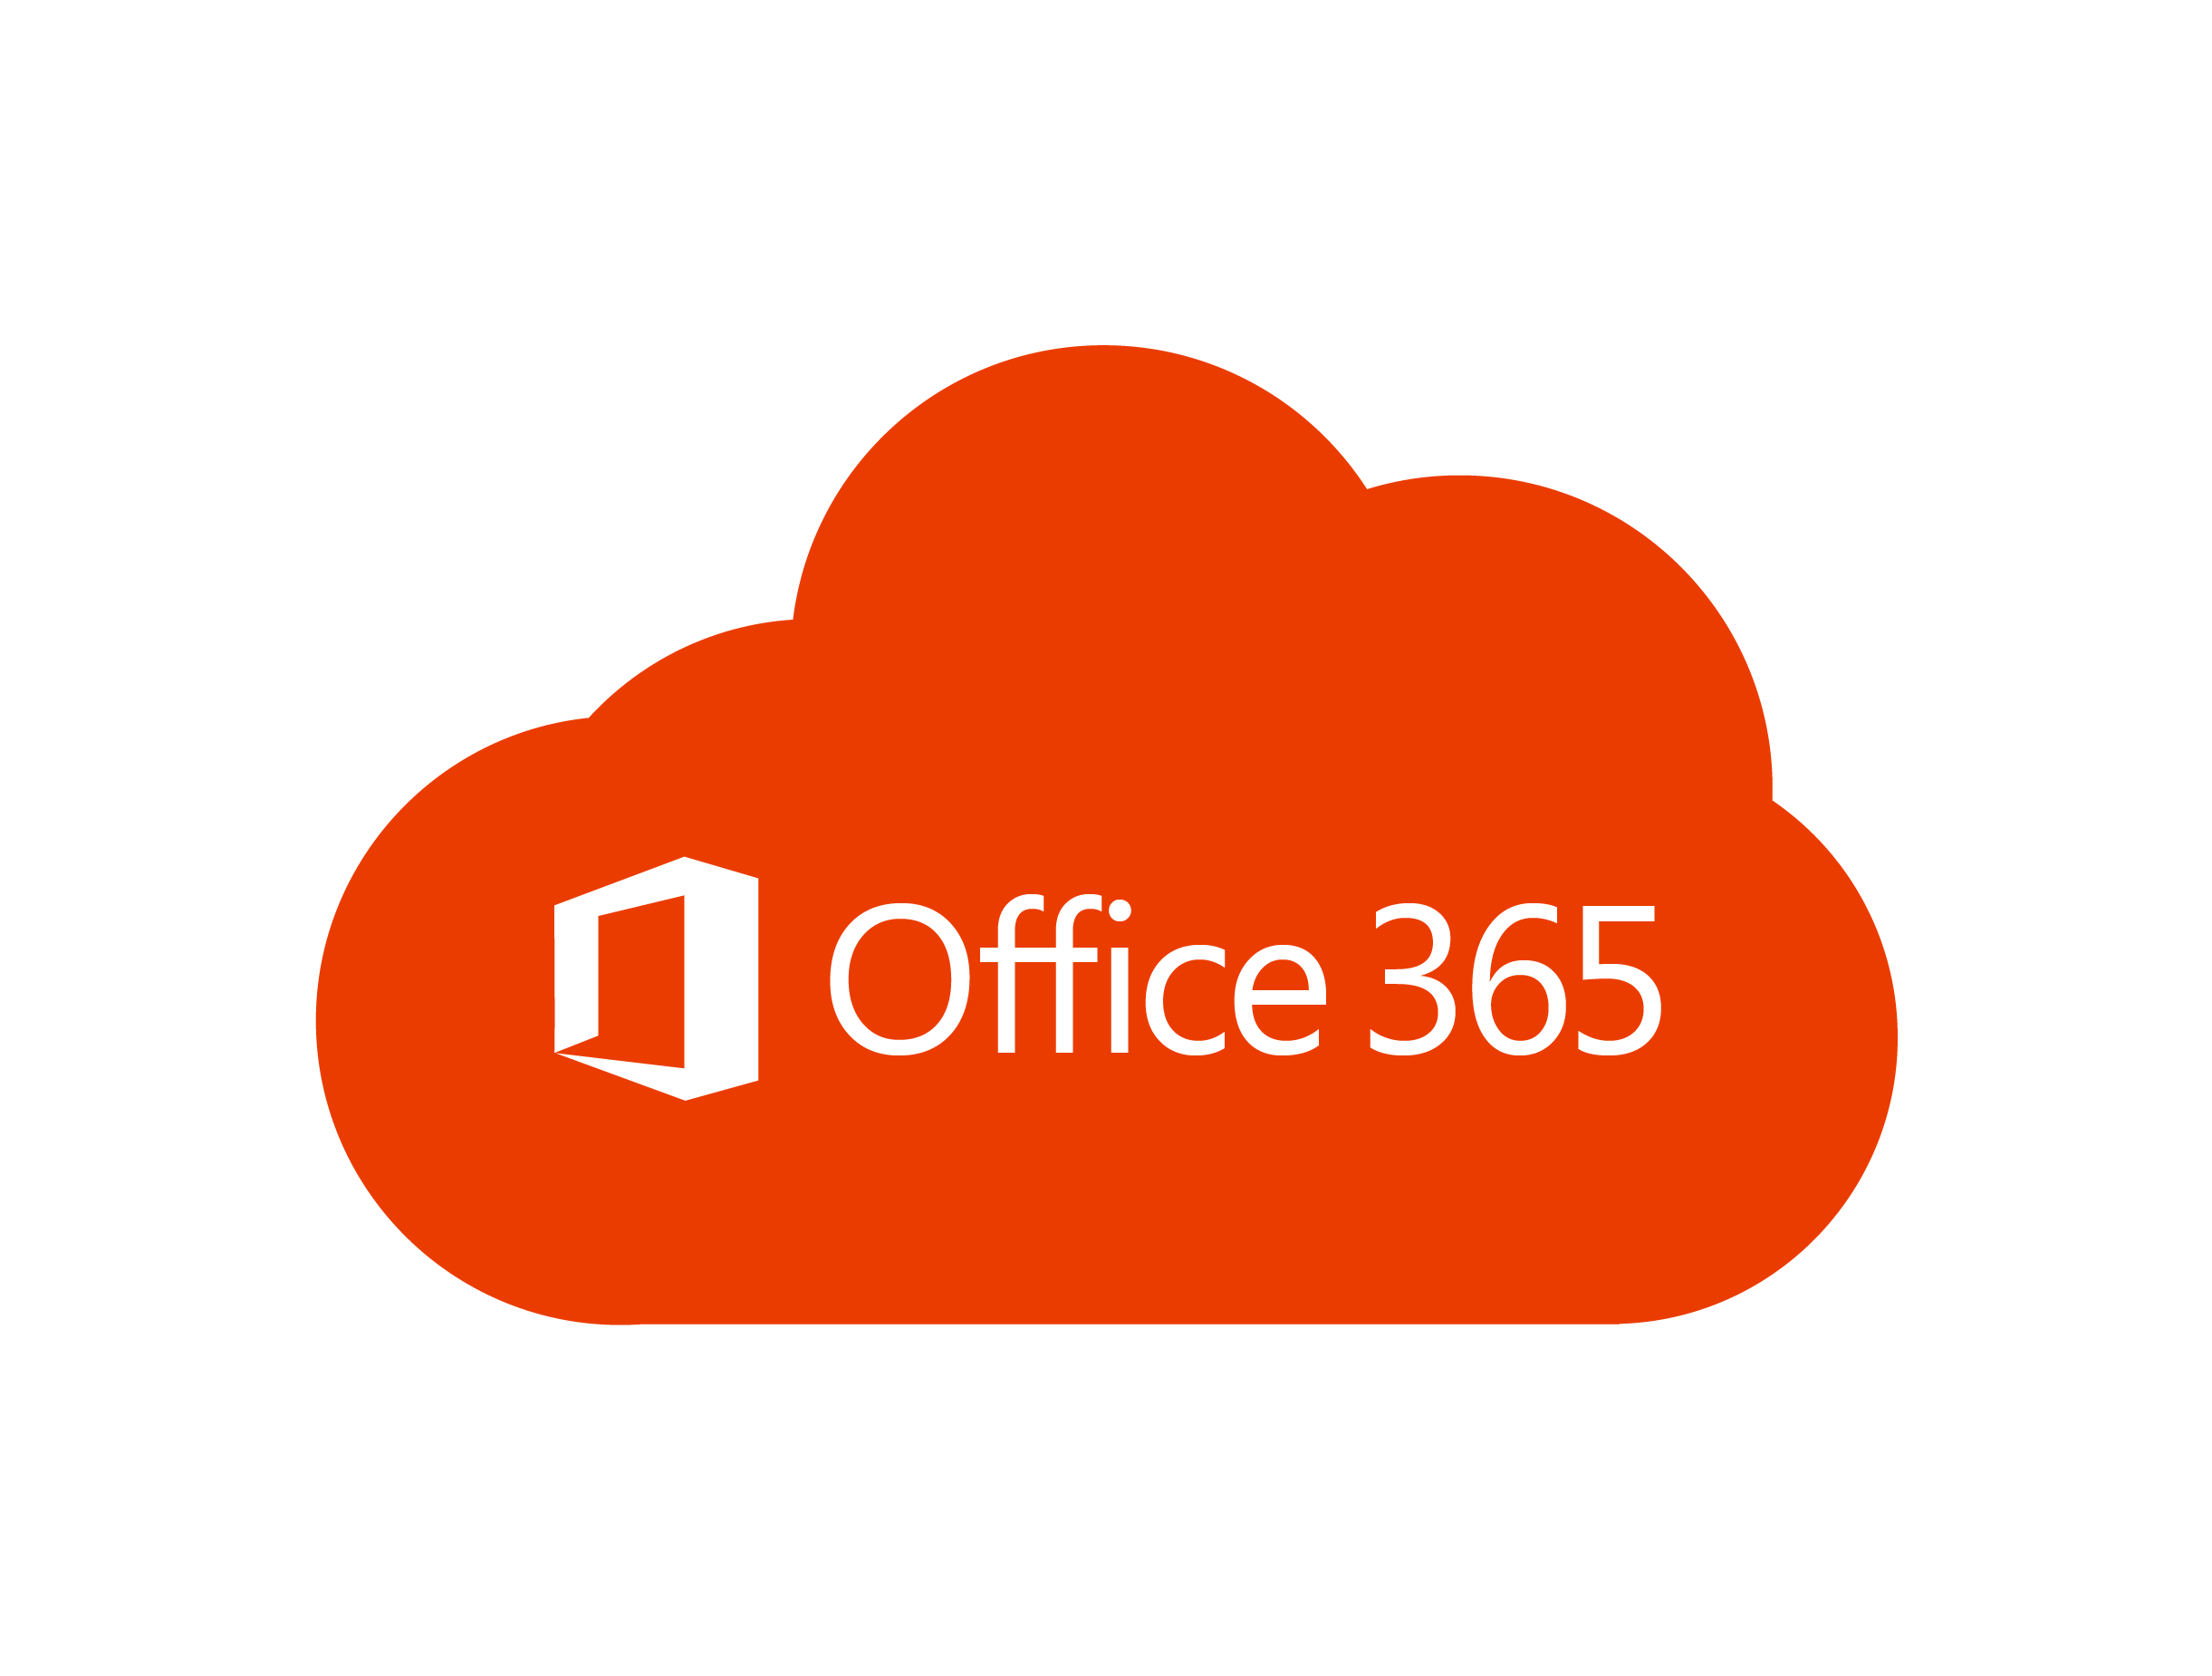 Too many Options in Office 365?